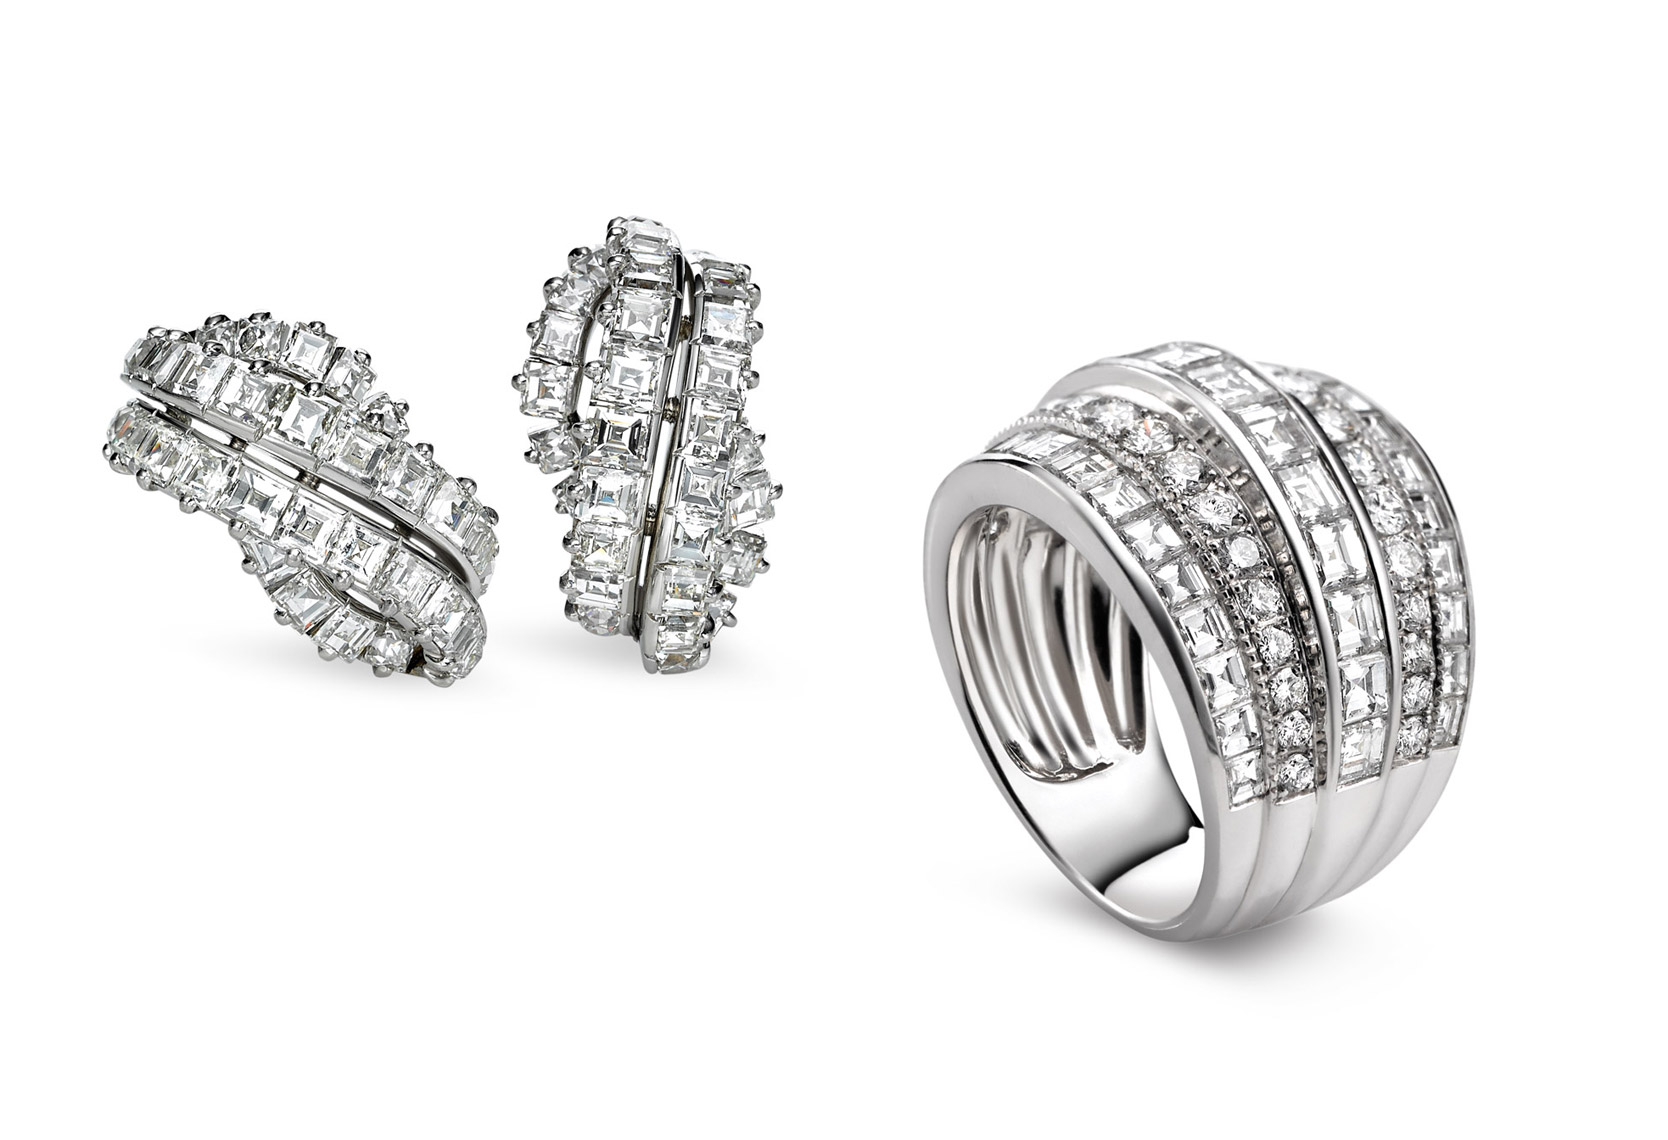 jewelry product photography - diamond earrings and ring -